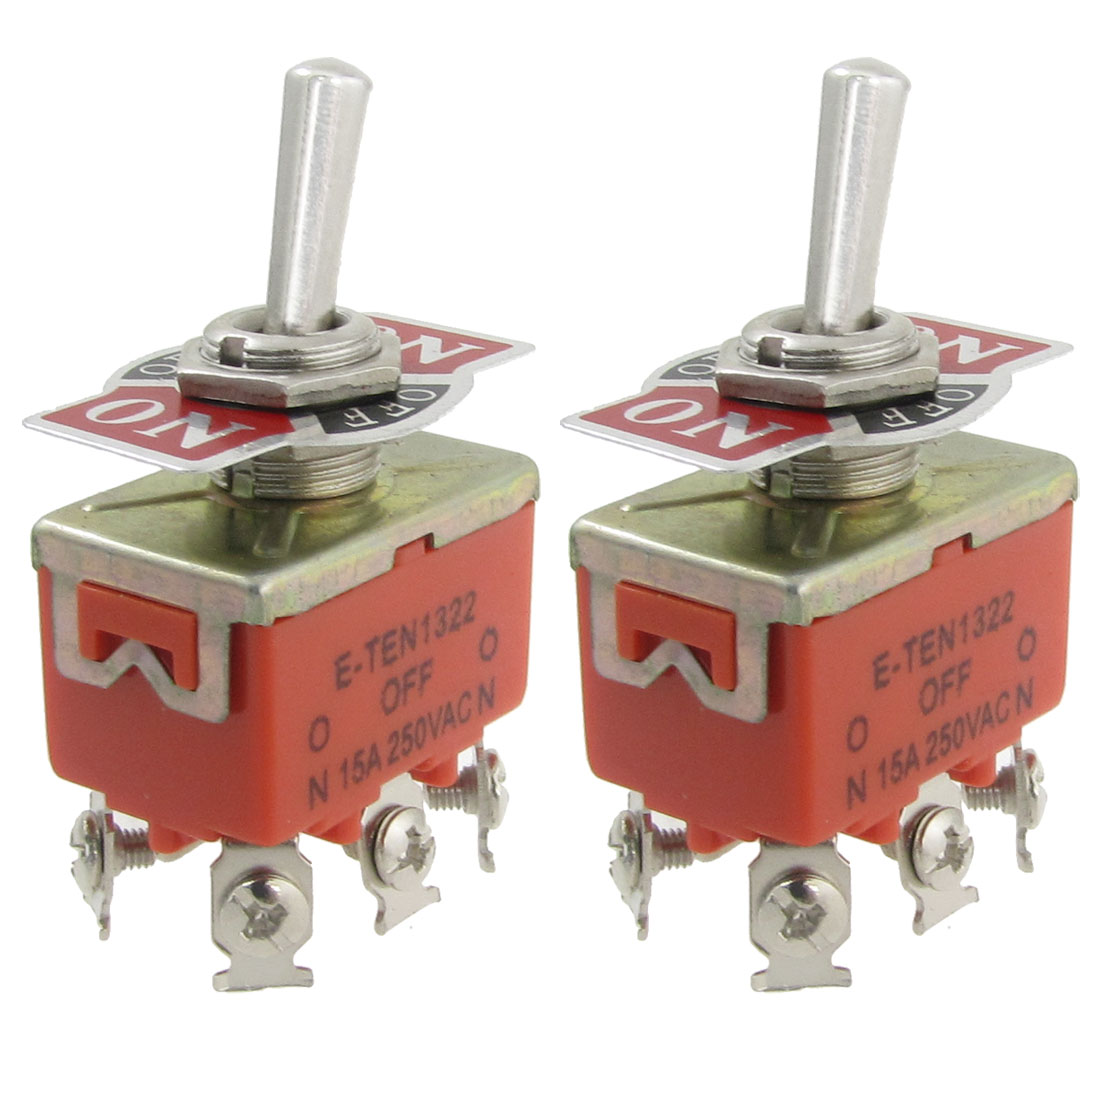 2 Pcs AC 250V 15A Amps ON/Center OFF/ON 3 Position DPDT 6 Screw Terminals Toggle Switch